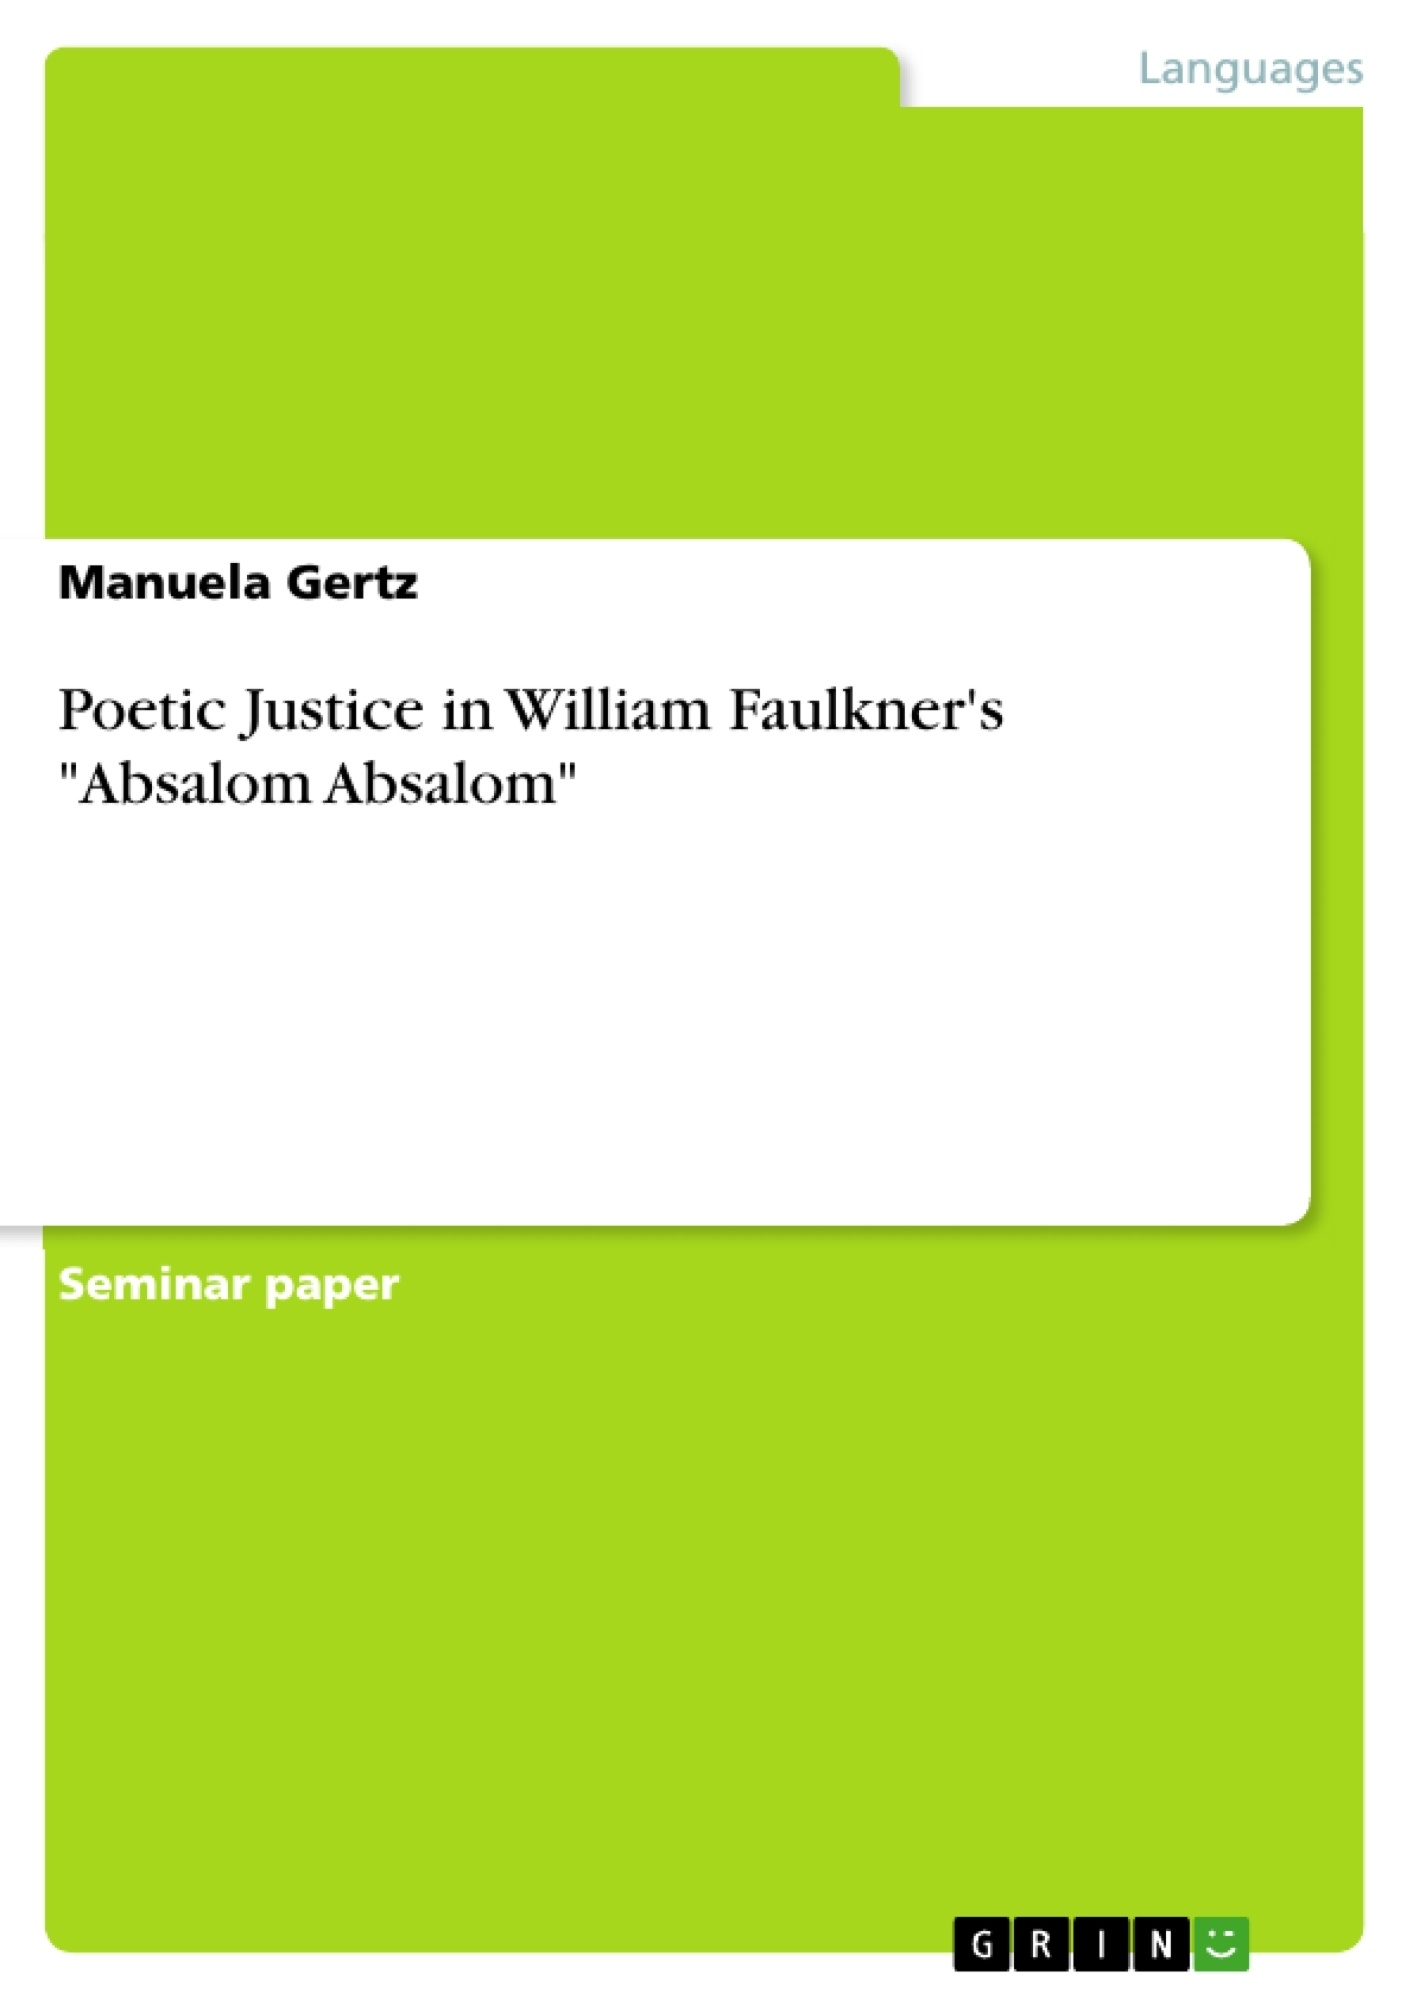 """Title: Poetic Justice in William Faulkner's """"Absalom Absalom"""""""